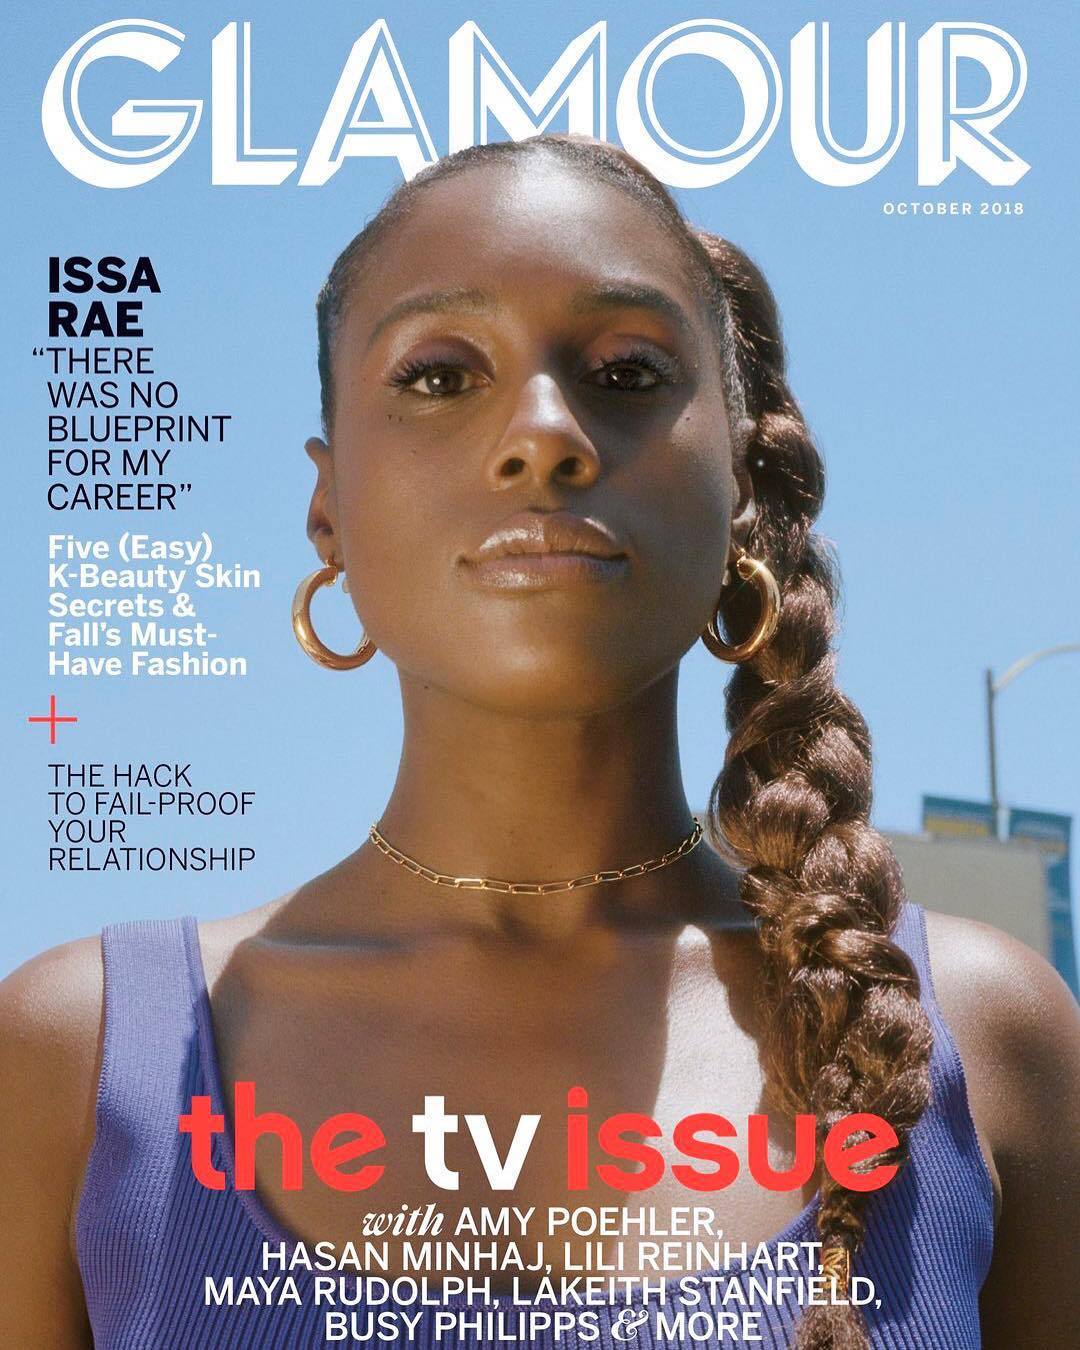 Issa rae poses on the cover of glamour magazine tv issue kamdora on her uncertainity about her future in entertainment the embarrassment came from making a youtube series while all of my friends were being doctors malvernweather Gallery